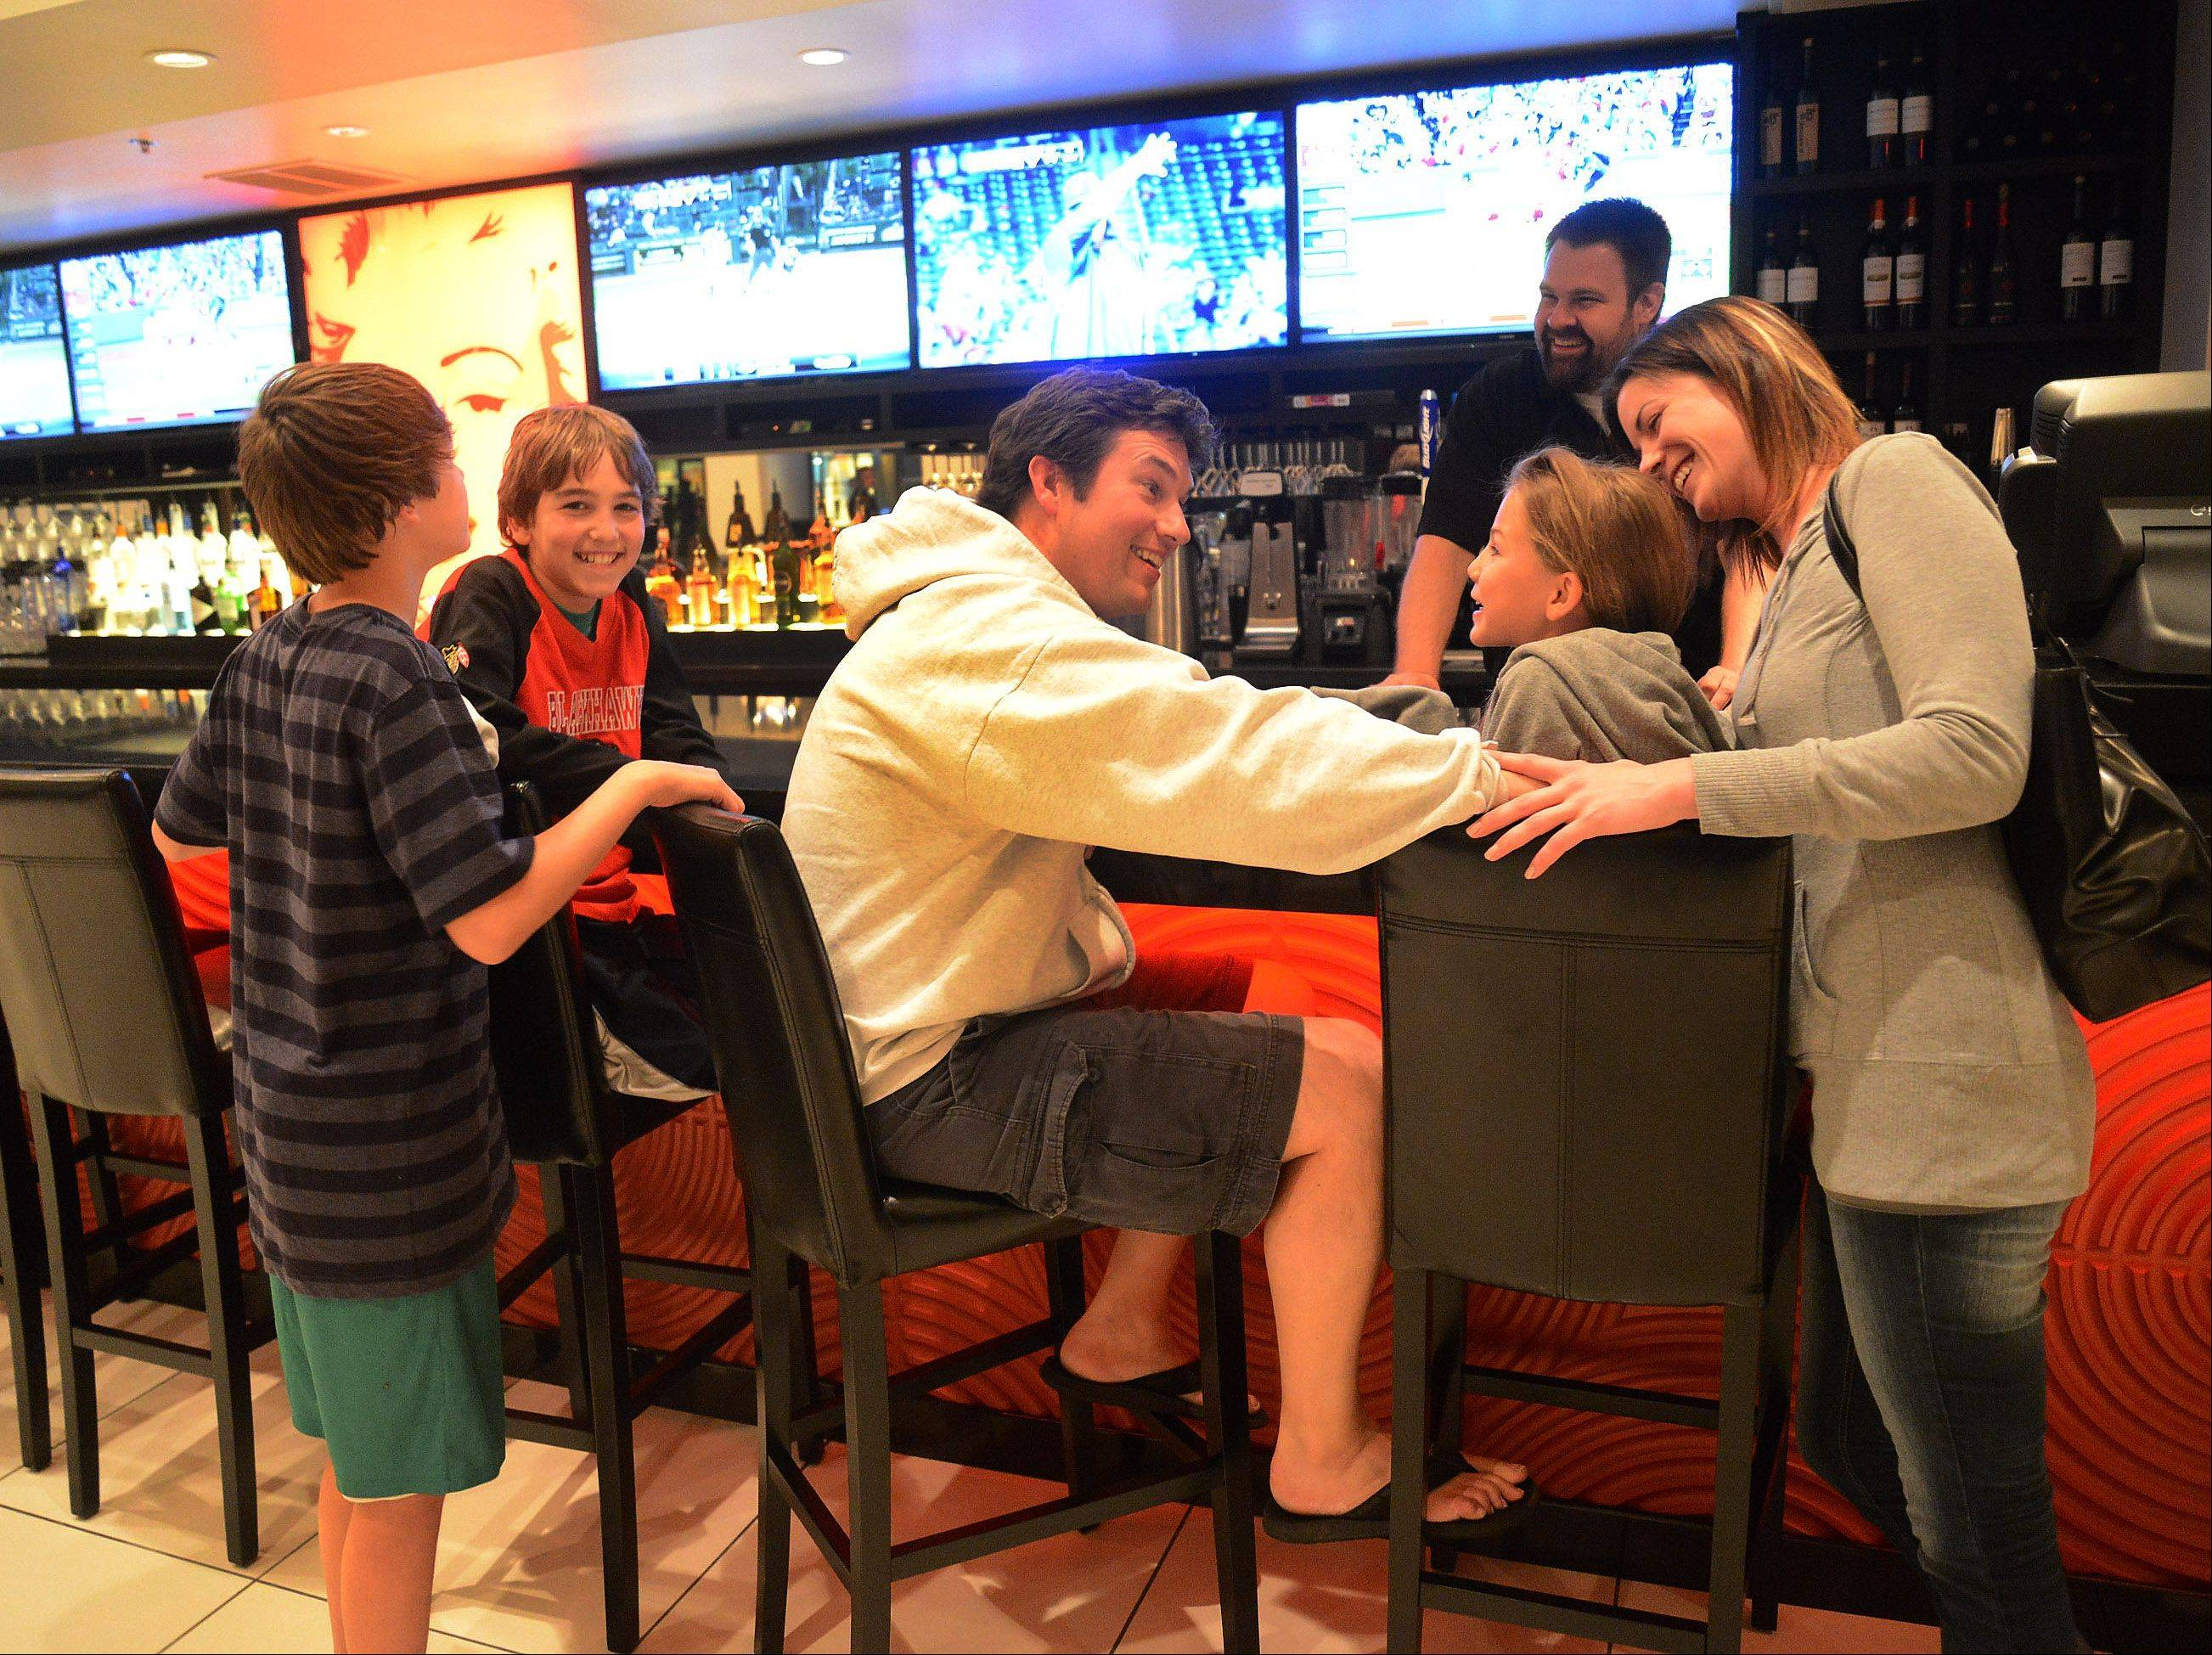 Burke, left, Cole, Jason, Andrea and Jenna Parent of Arlington Heights enjoy themselves in the lobby after a movie at the Star Cinema Grill.